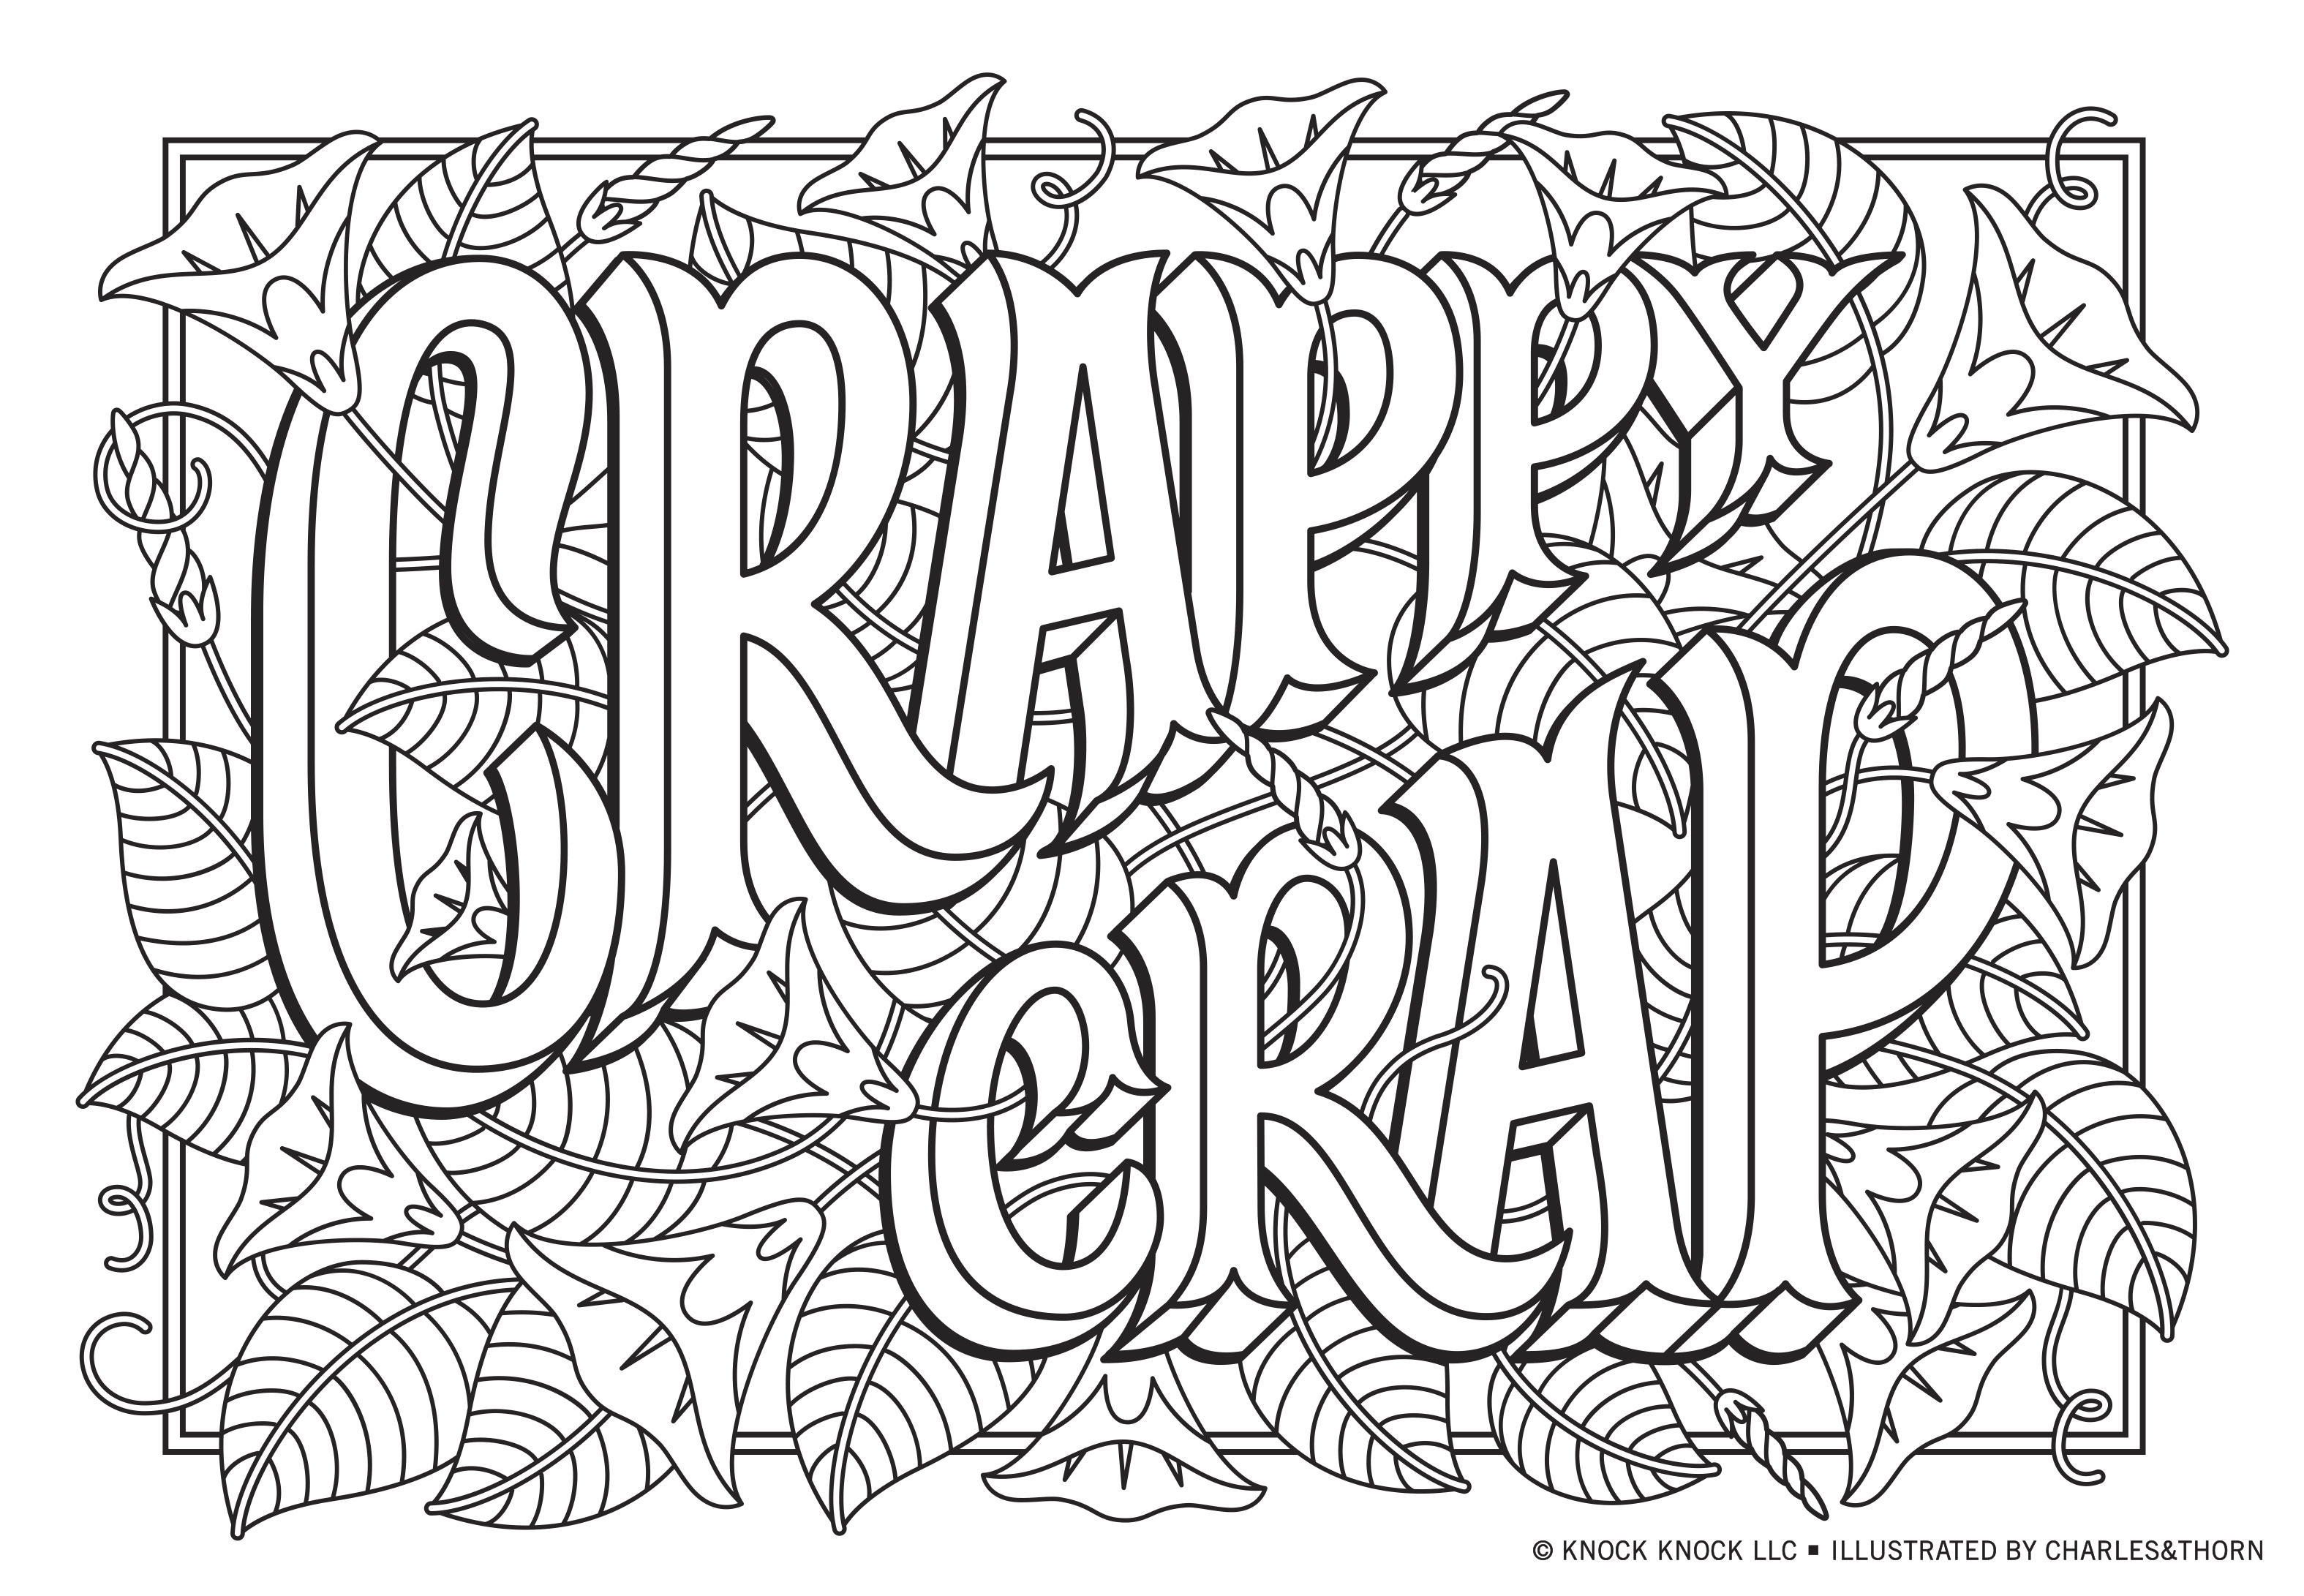 Funny Printable Coloring Pages for Adults by Knock Knock